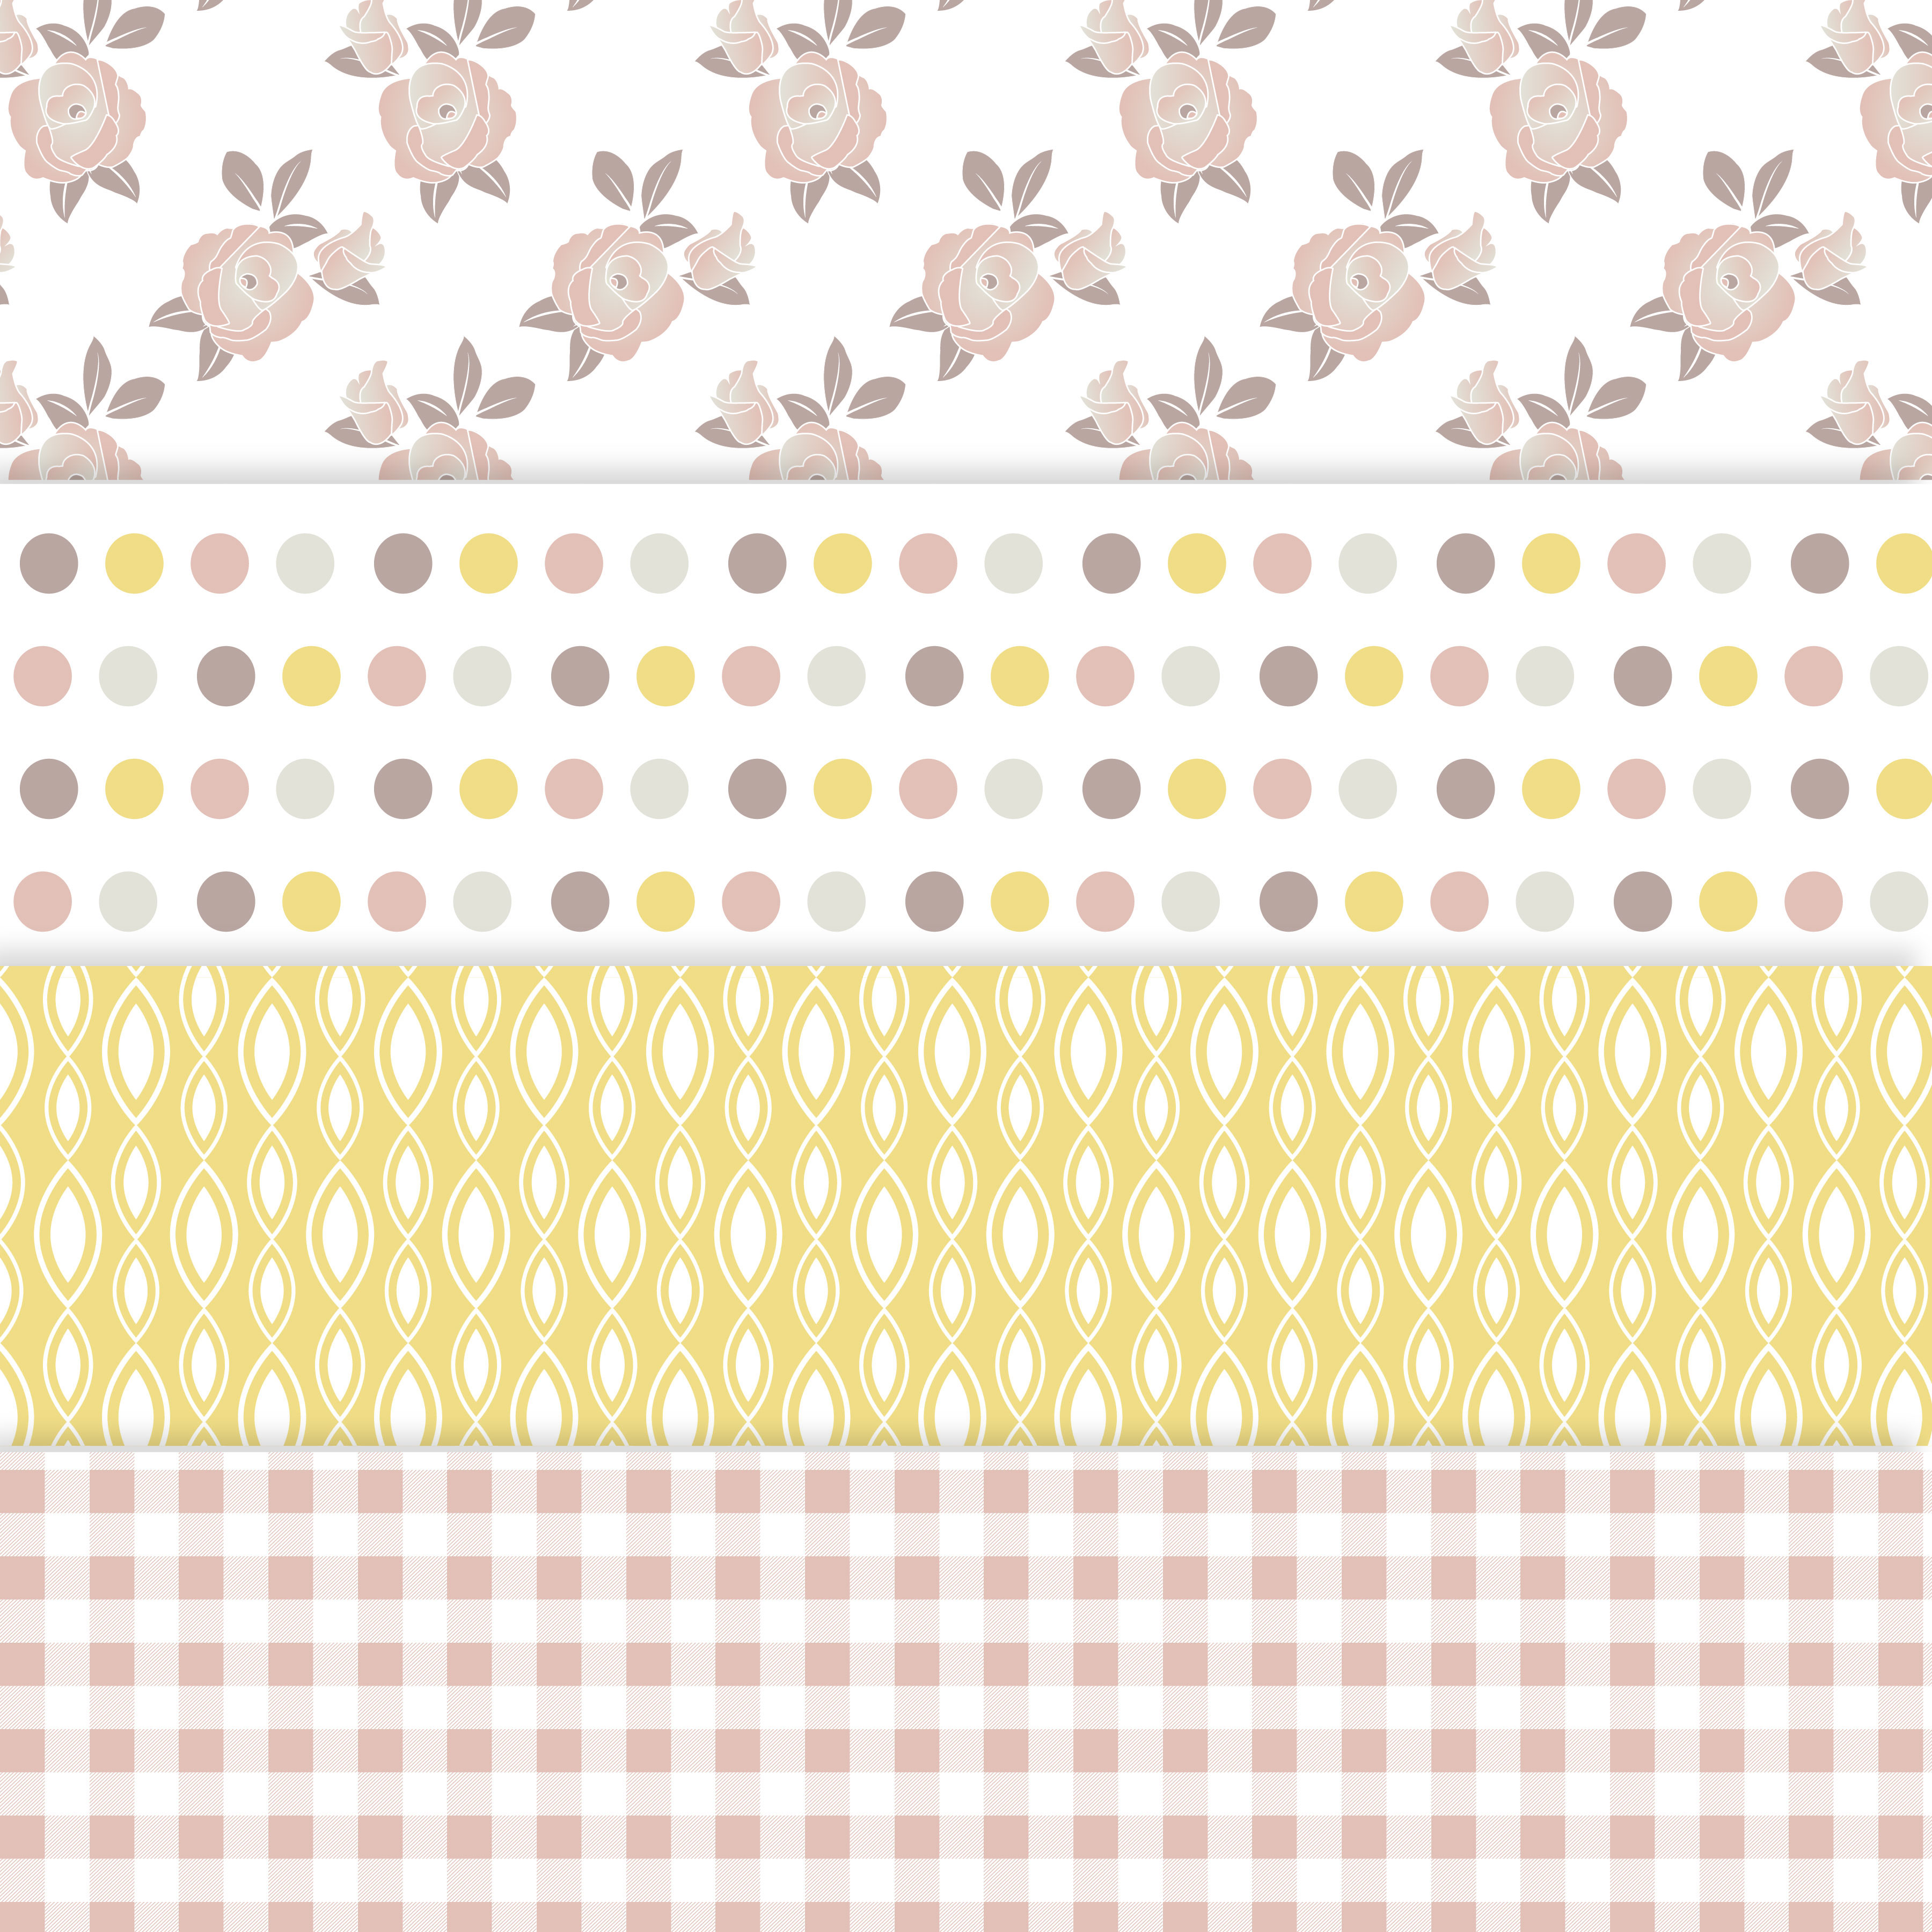 Floral Shabby Chic Digital Paper example image 2